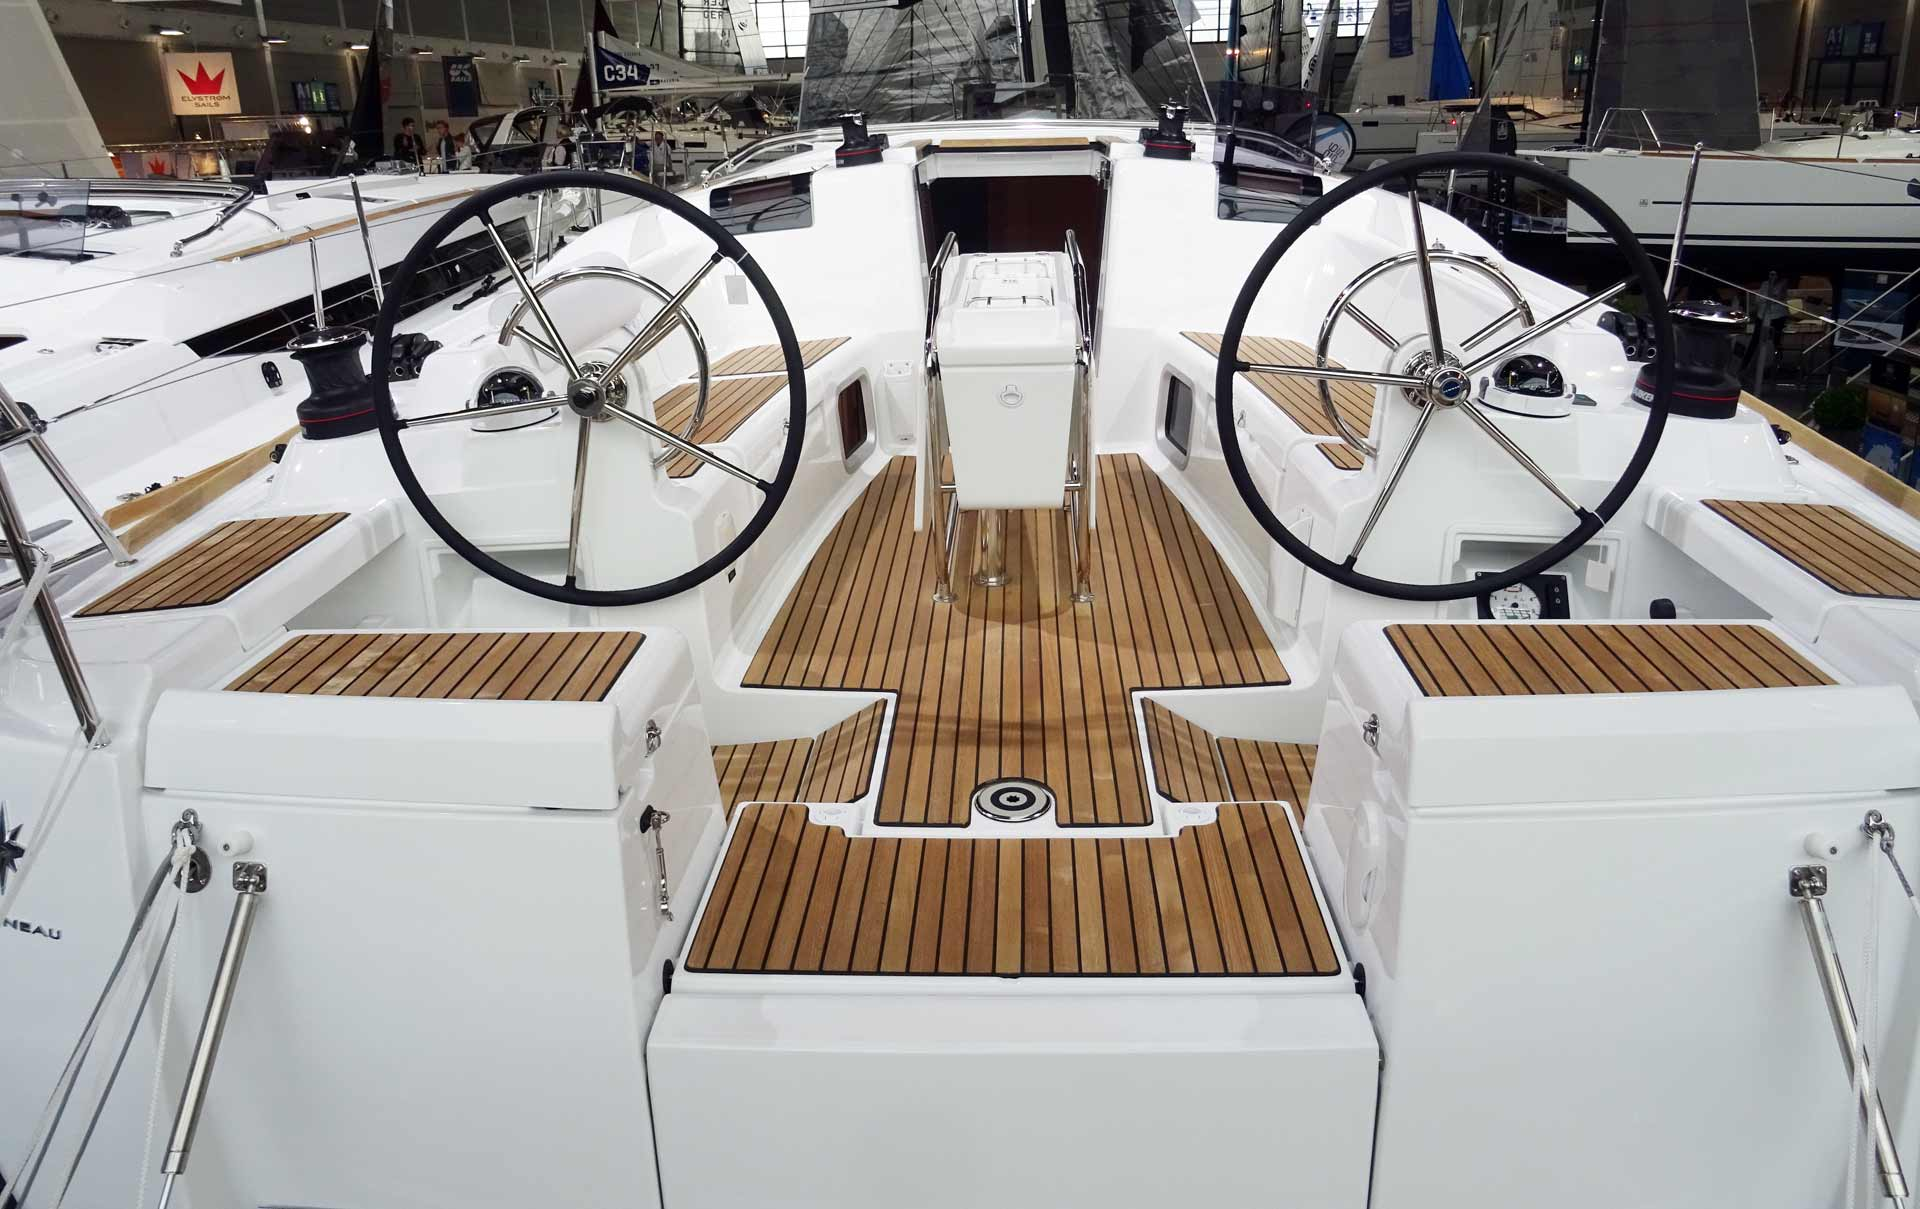 The cockpit seems well made for sailors